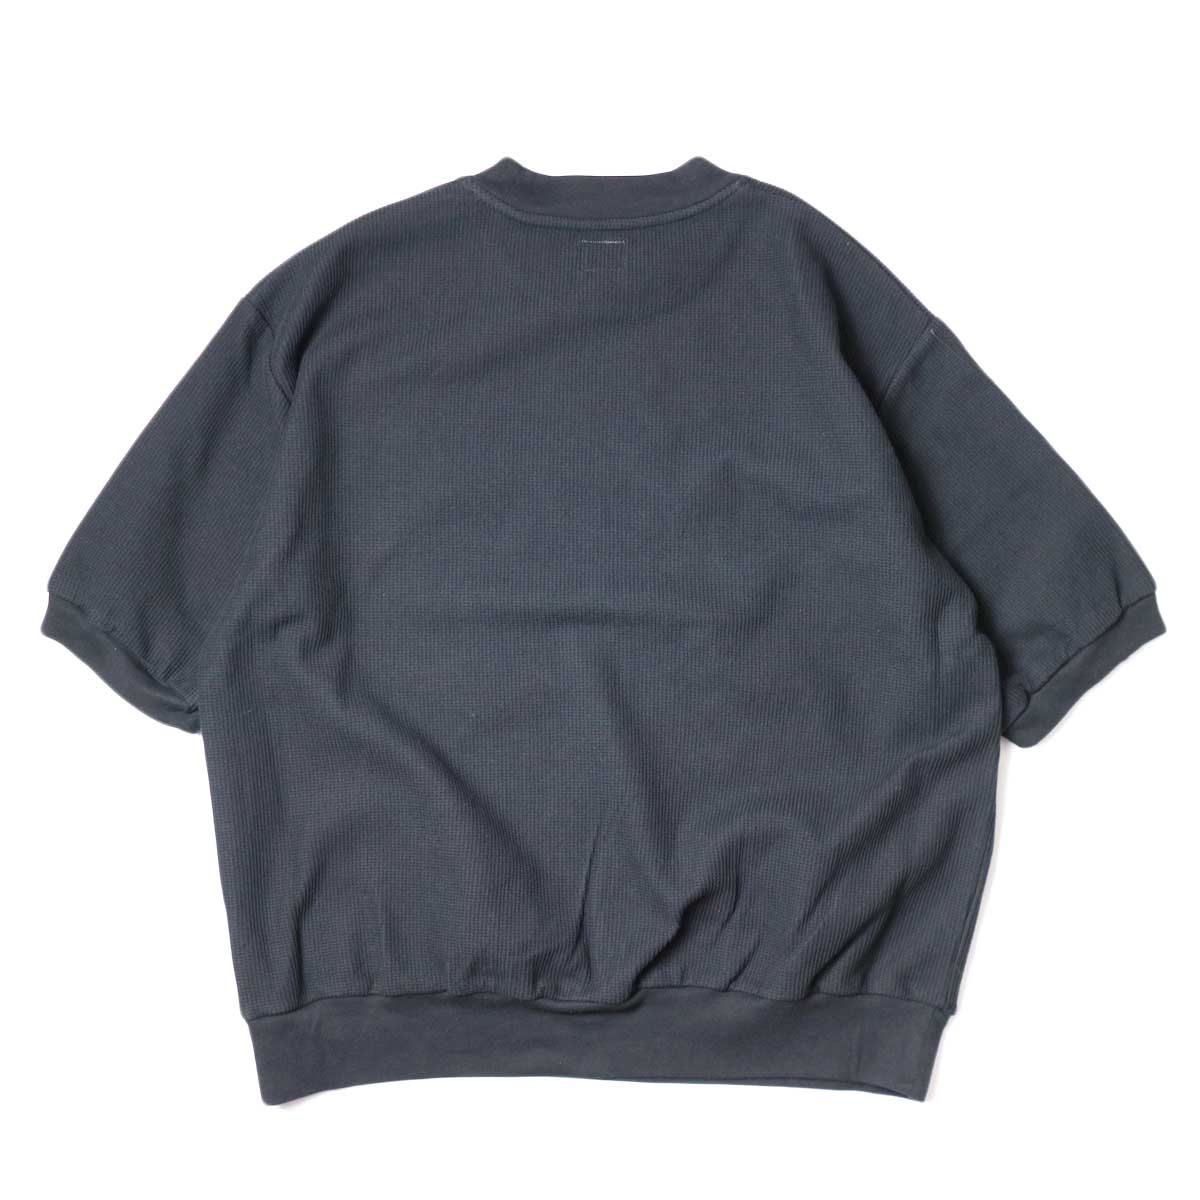 blurhms / Rough&Smooth Thermal Pullover S/S (Black) 背面